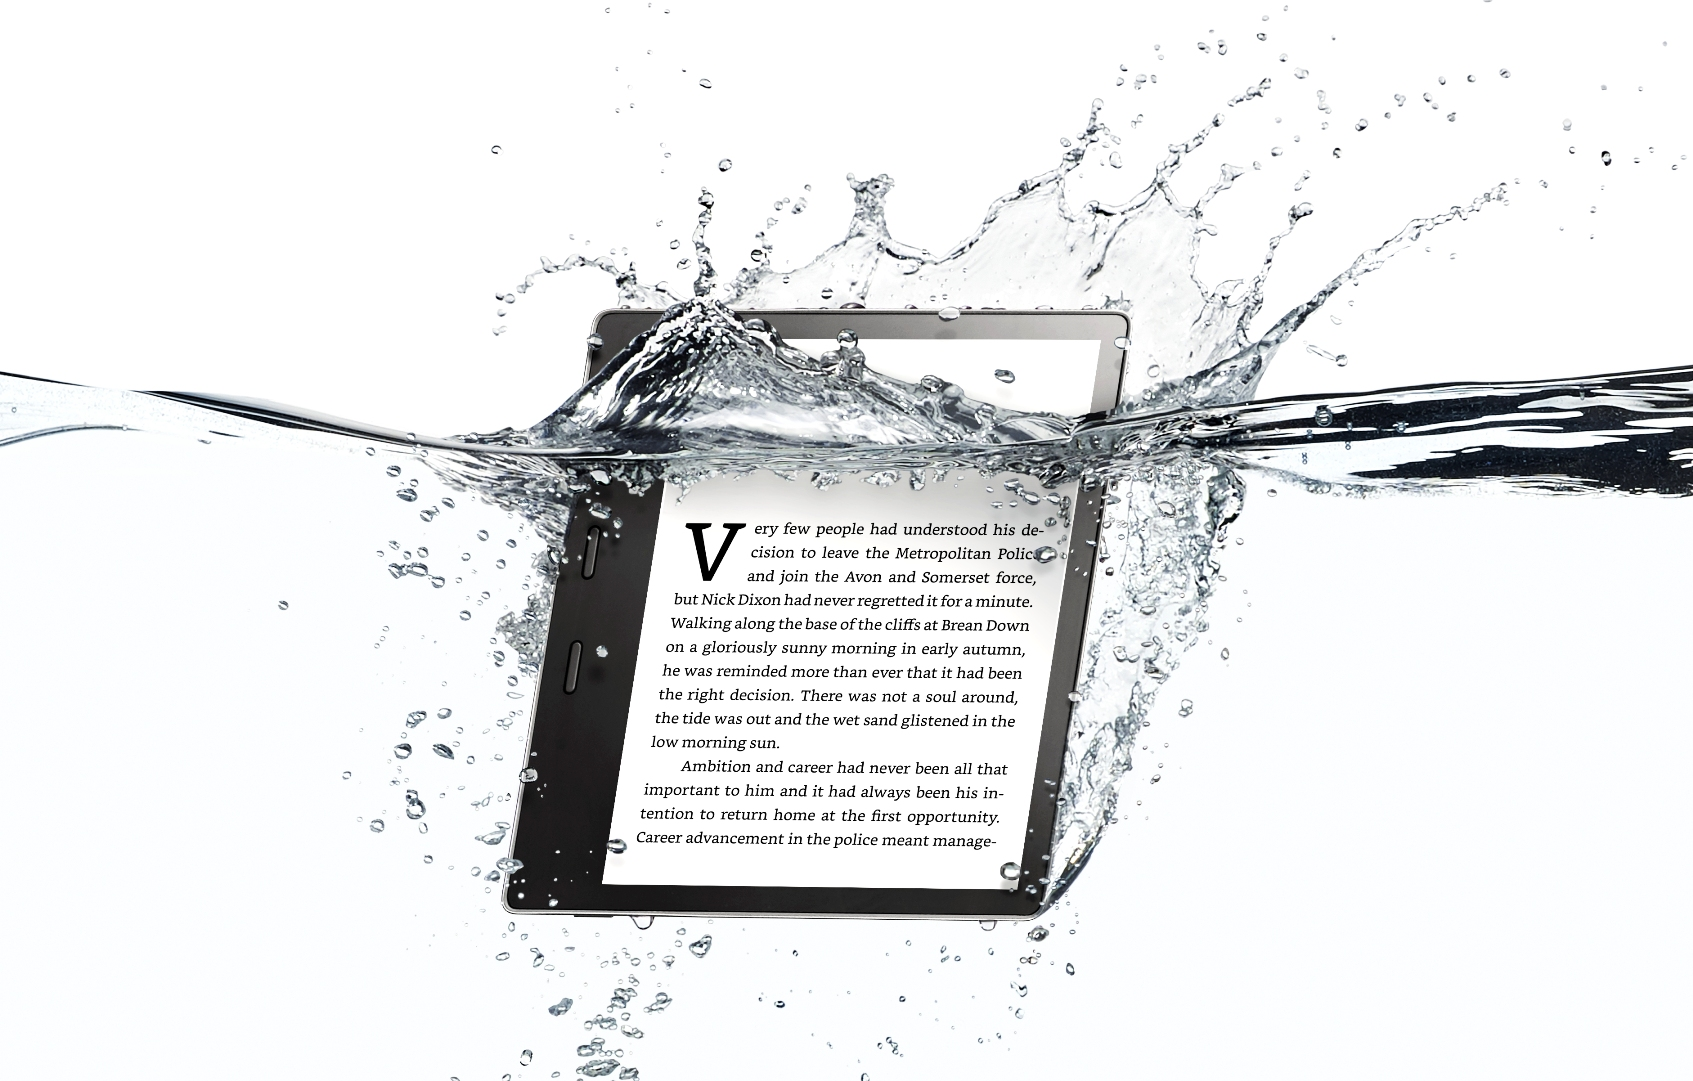 Amazon's new Kindle Oasis is Waterproof and $40 Cheaper than the Original